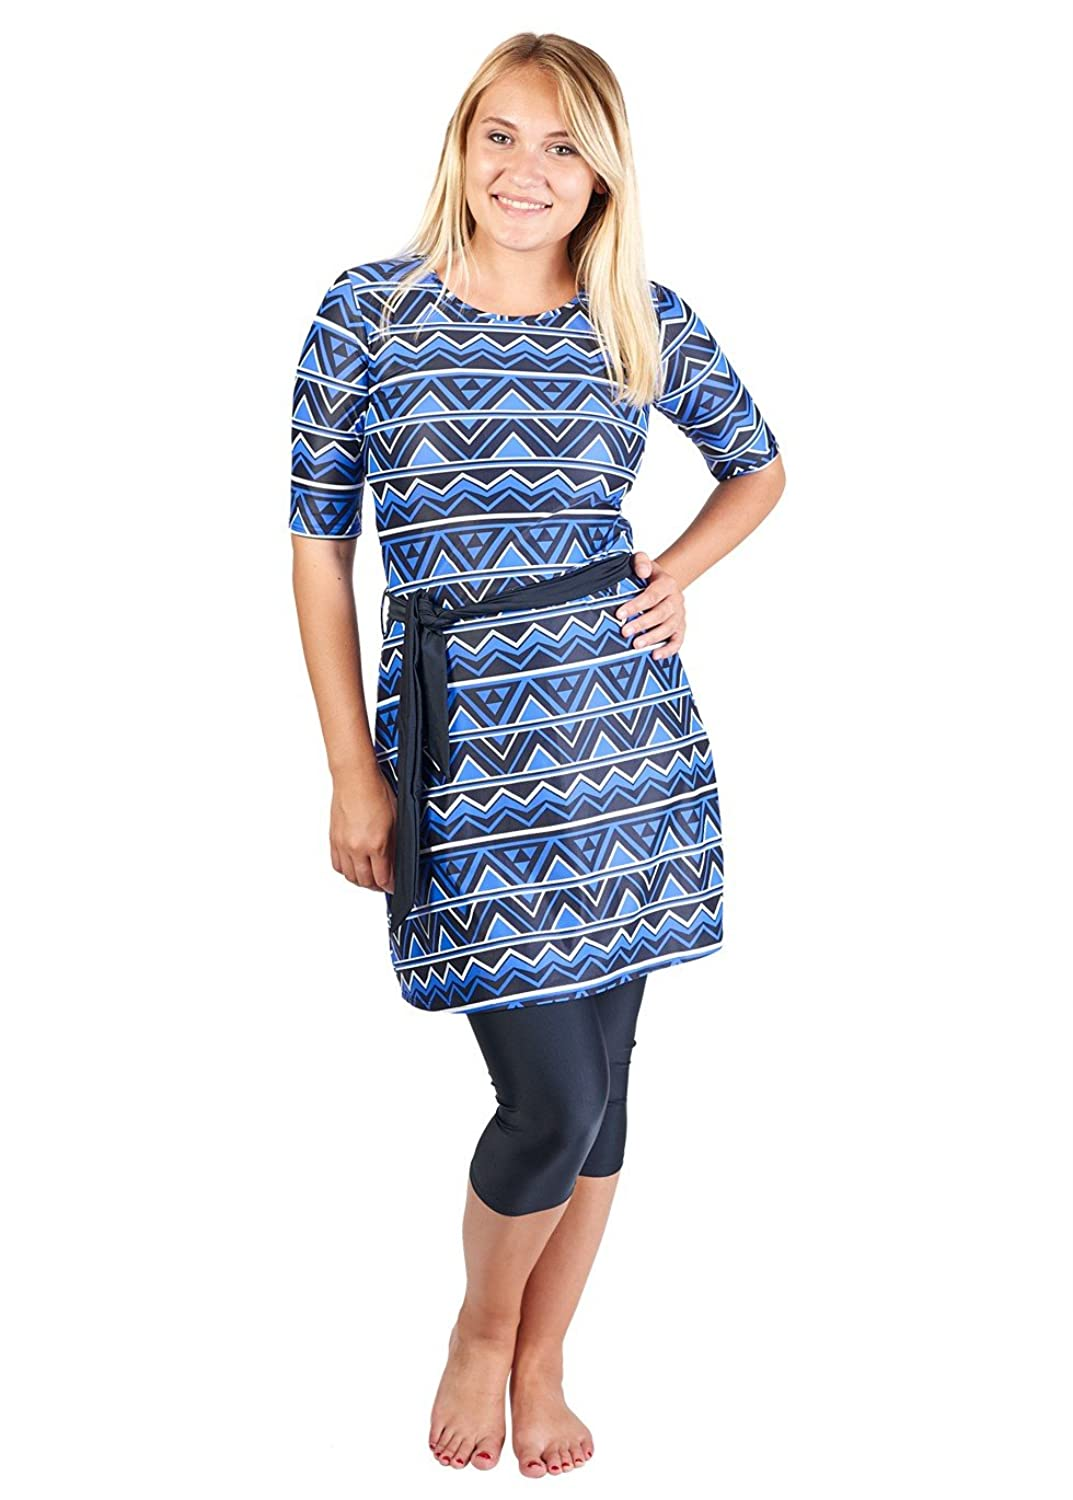 9bf42c2e89ba7 STYLISH AND MODEST - bright, patterned modest swimwear you will be excited  to wear!